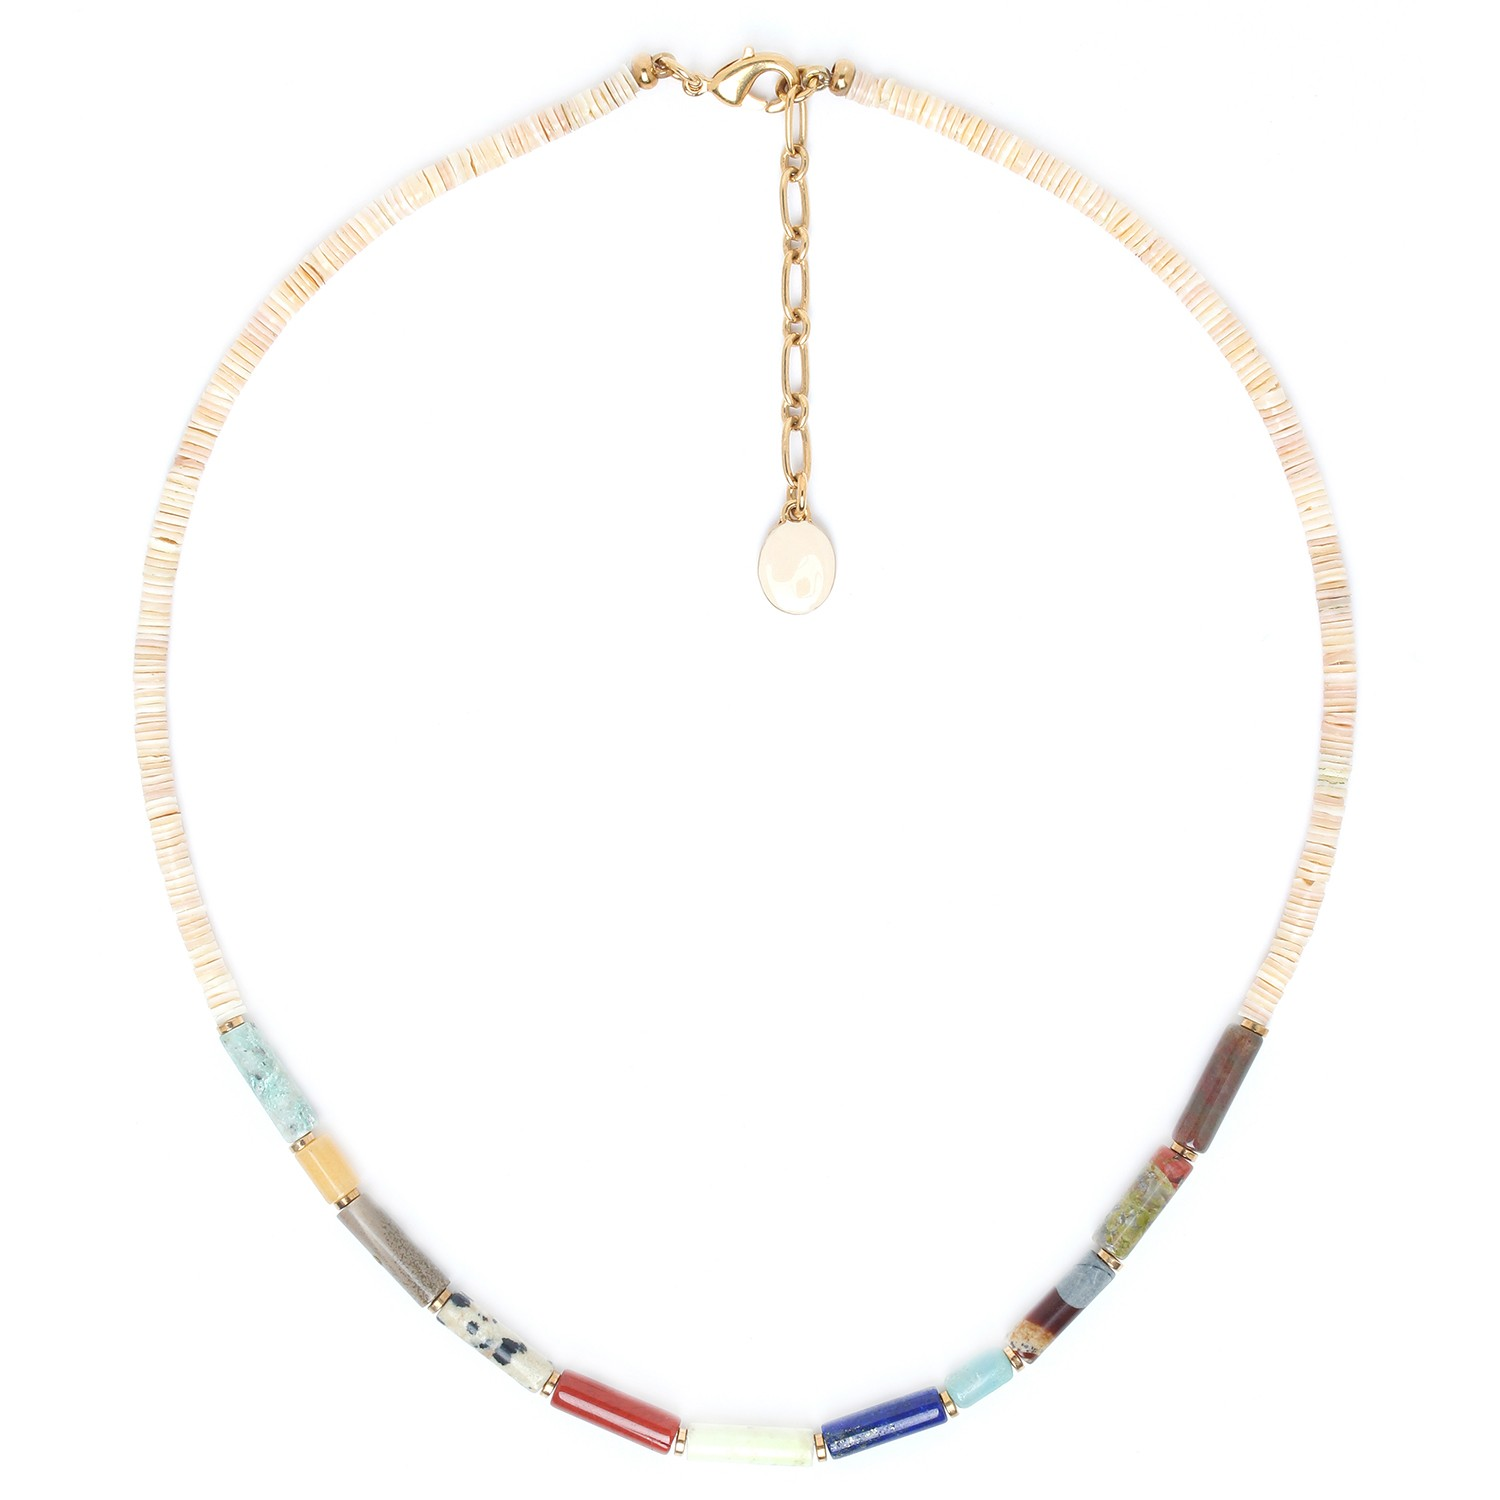 PIPELINE heishi necklace